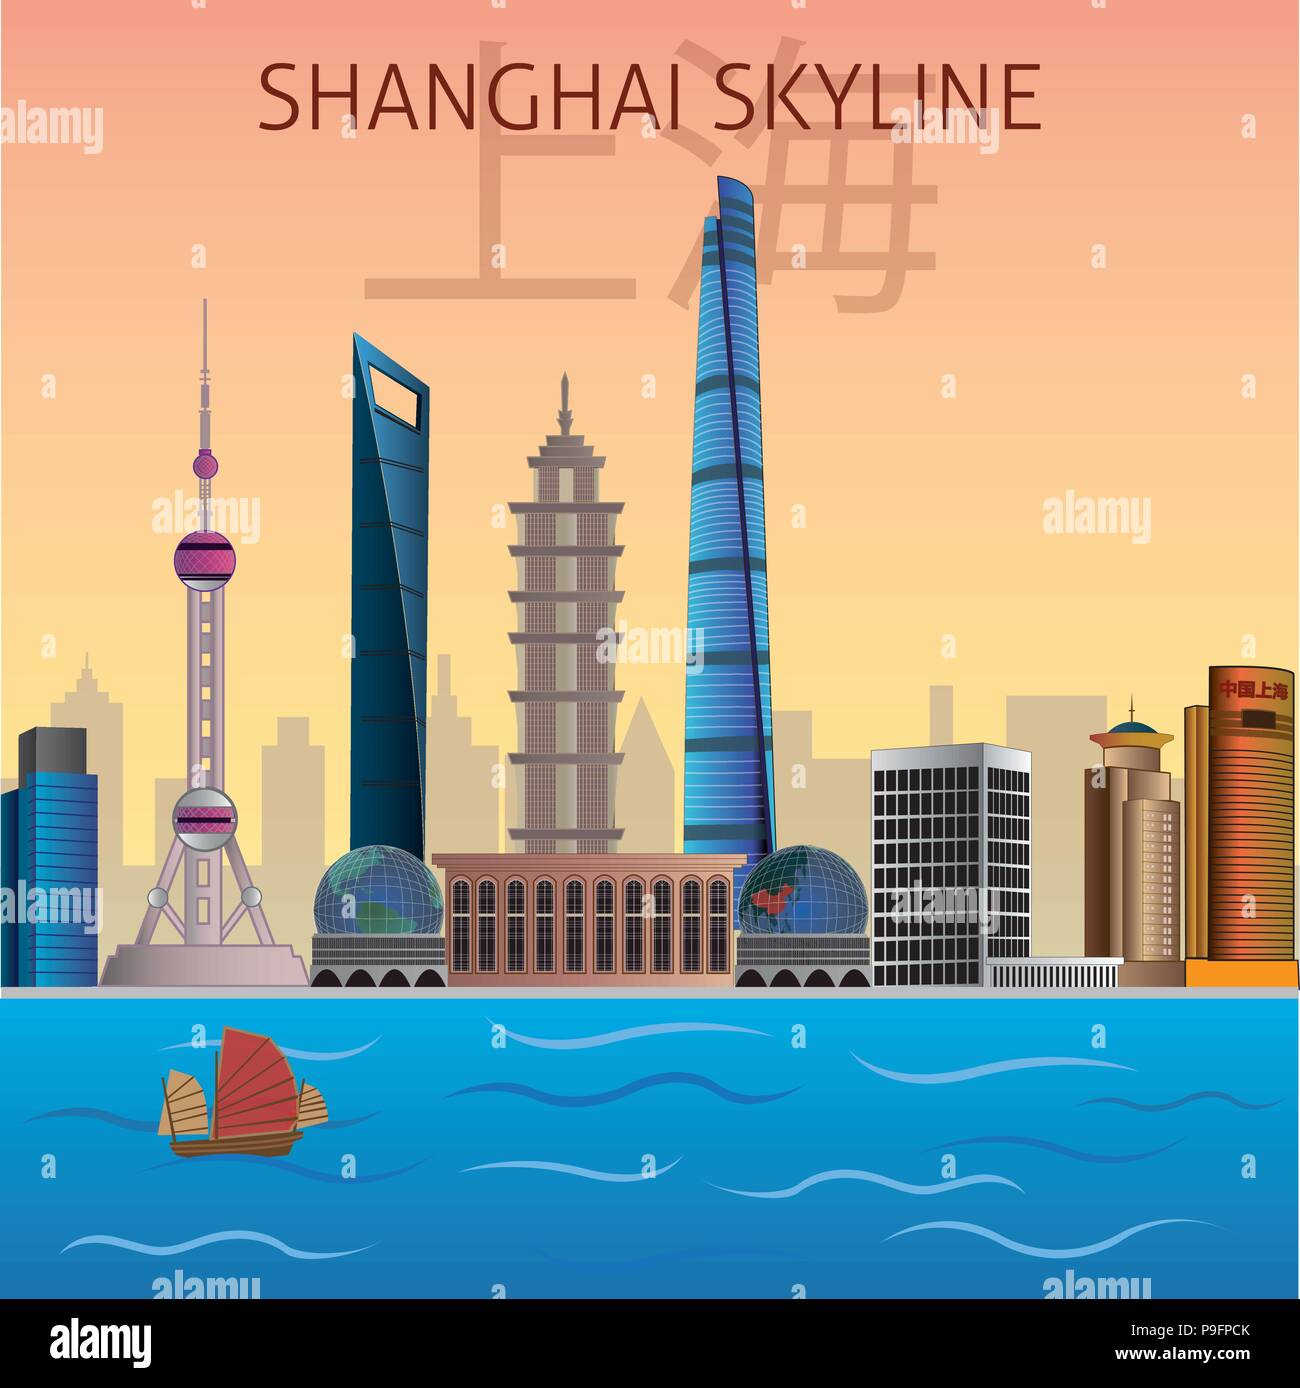 Modern Shanghai Skyline Vector with Chinese Characters writing the name of the city - Stock Vector